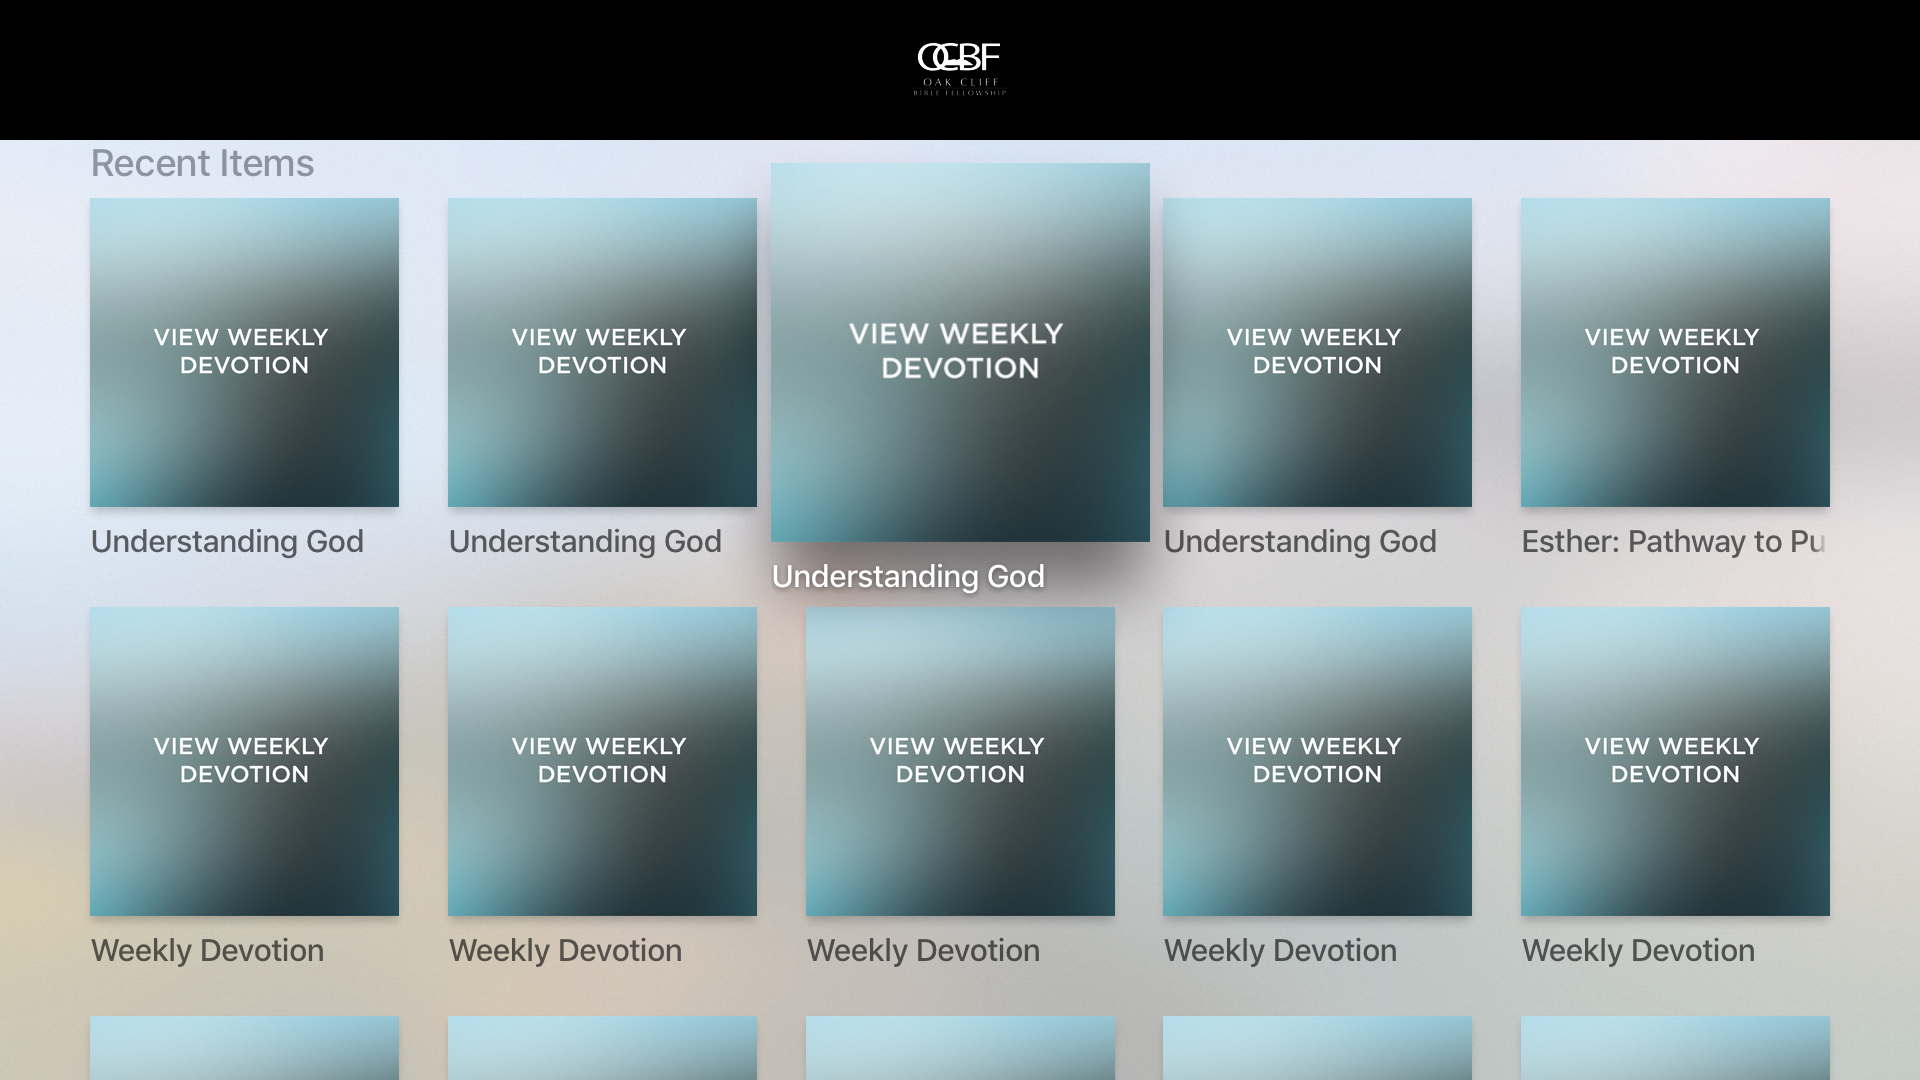 OCBFChurch App screenshot 7